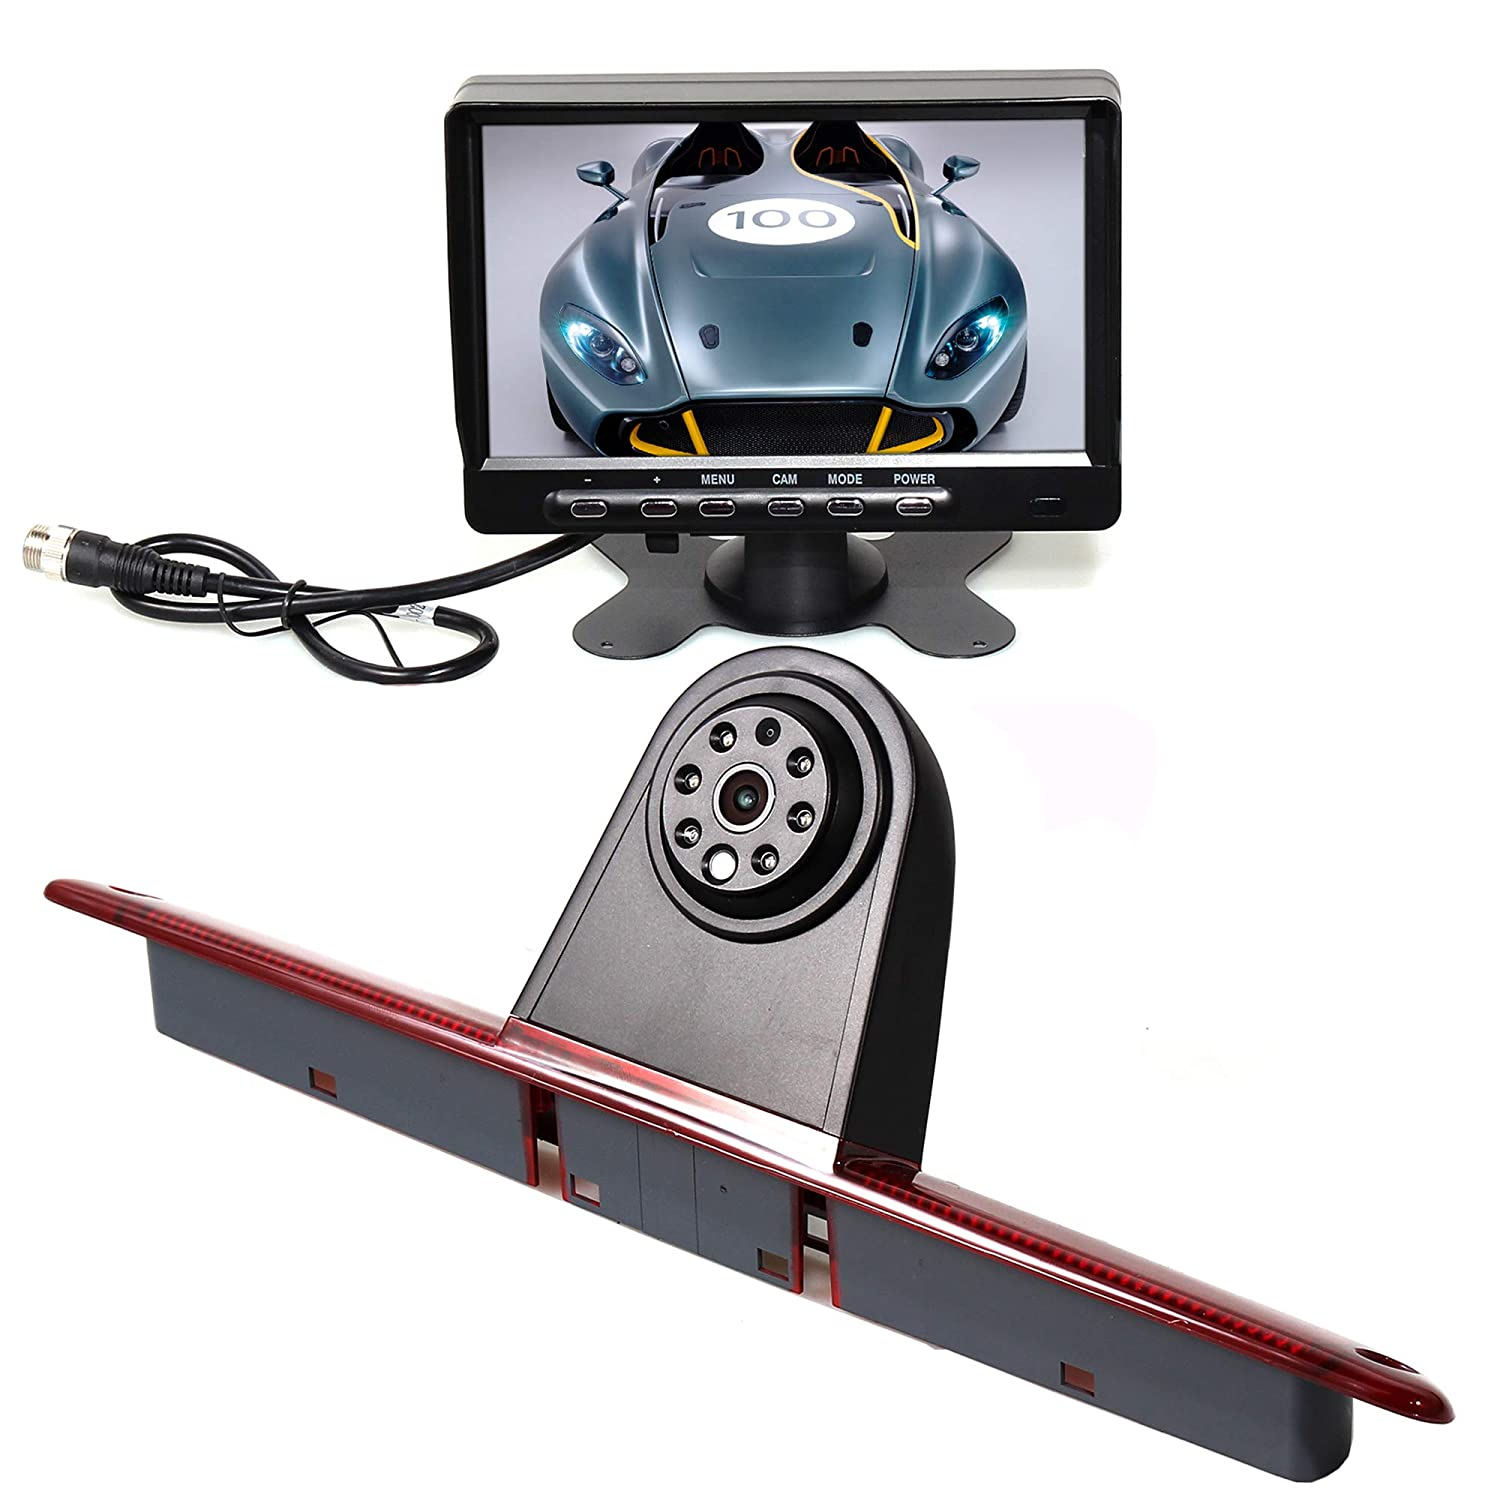 RED WOLF 3rd Brake Light Reversing Parking Backup Camera Kit with 7'' TFT LCD Monitor For 2007-2018 Mercedes Benz Sprinter/Dodge Sprinter/VW Crafter Vans